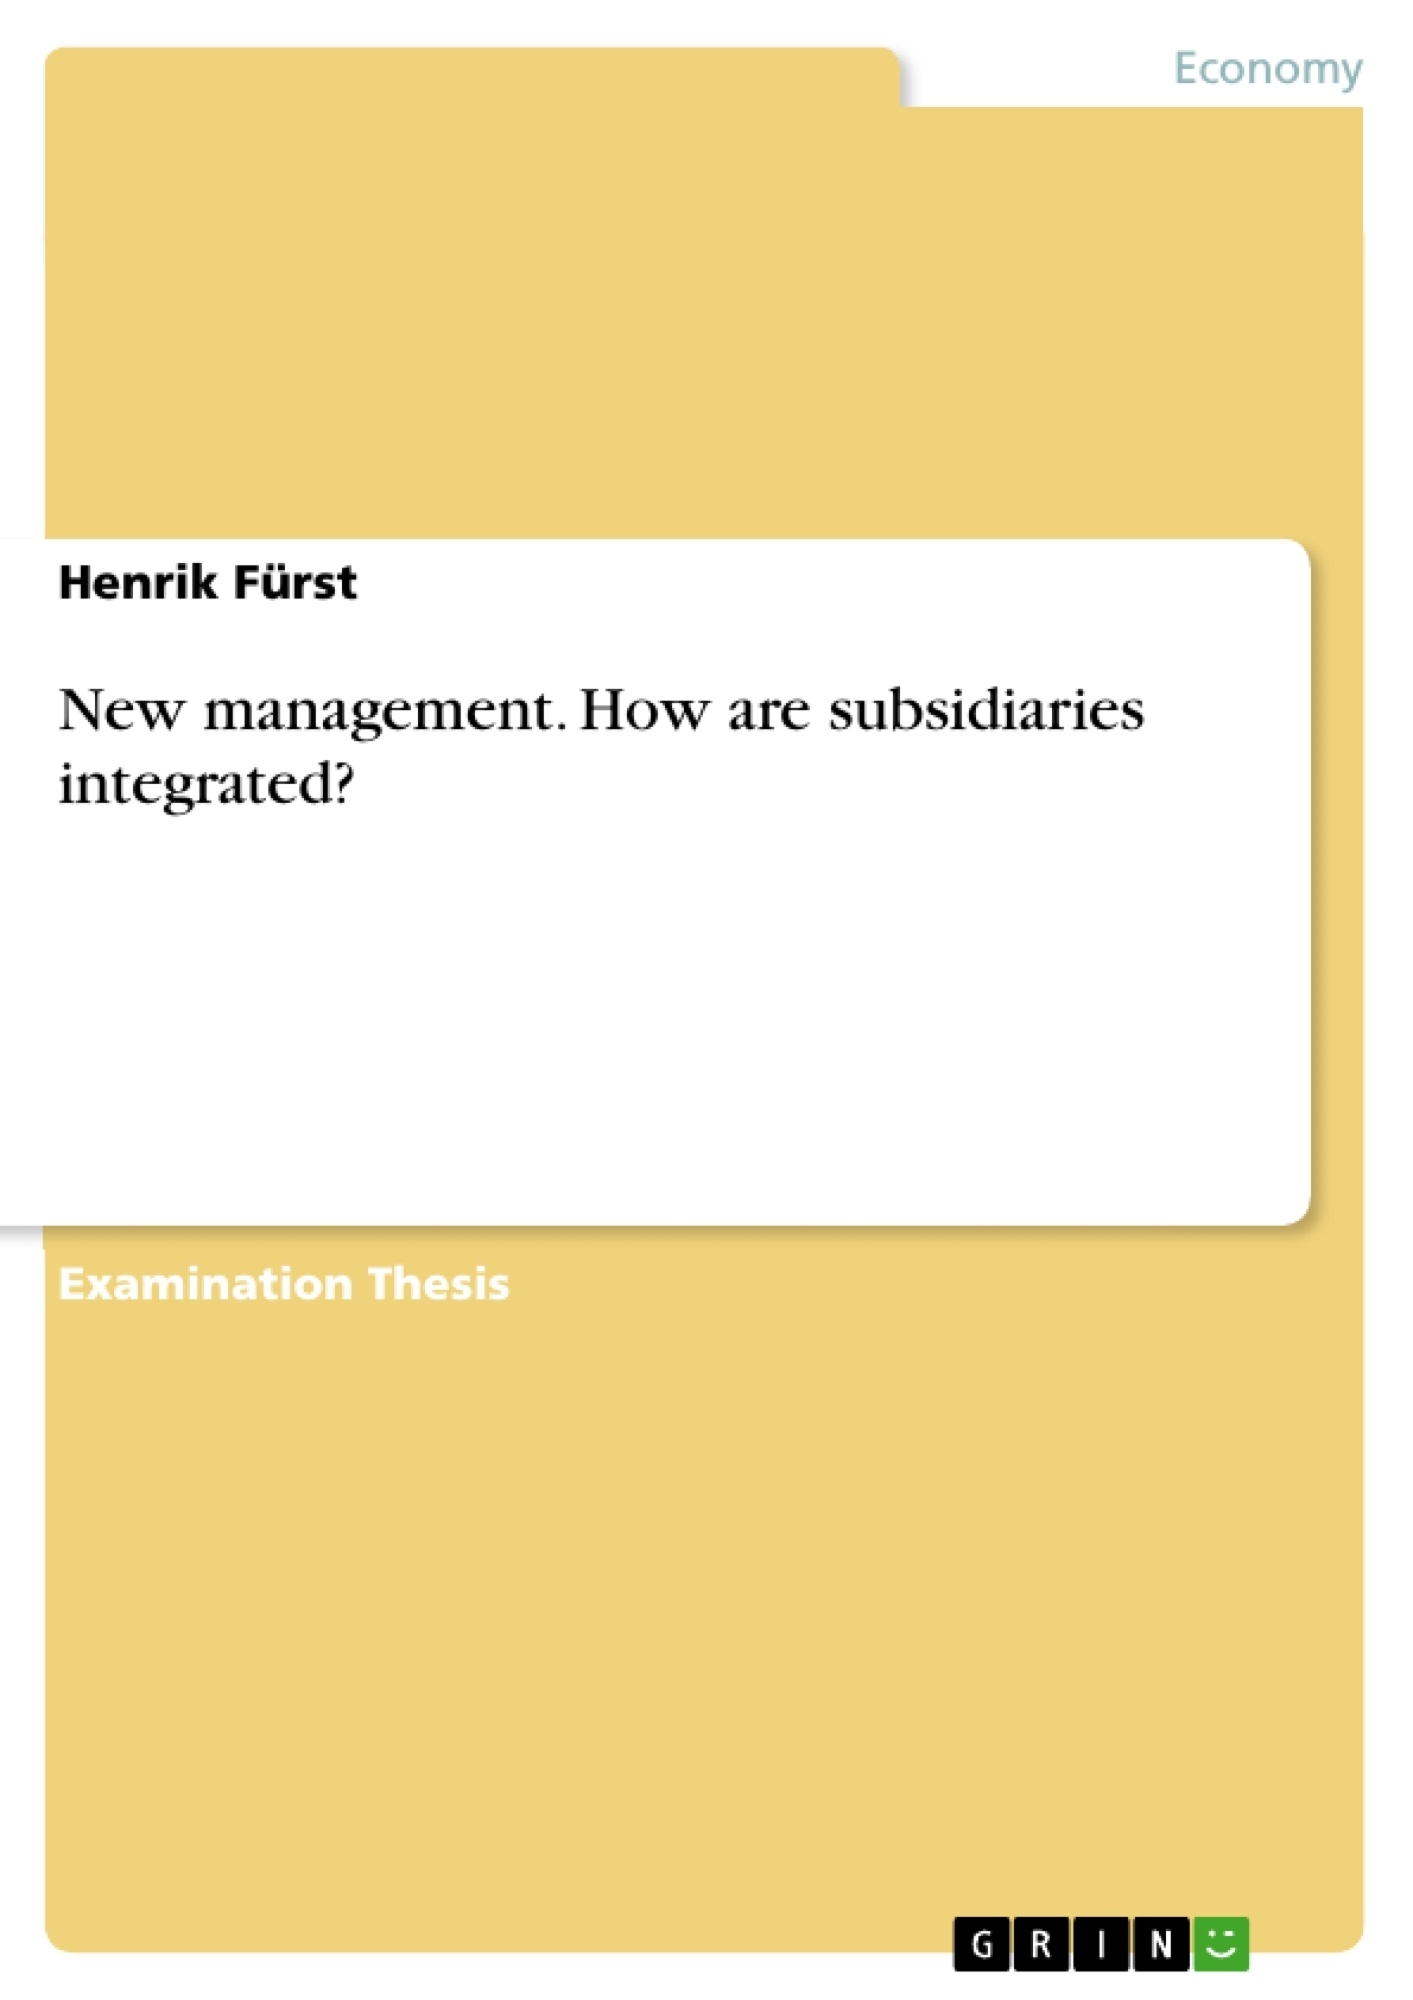 Title: New management. How are subsidiaries integrated?